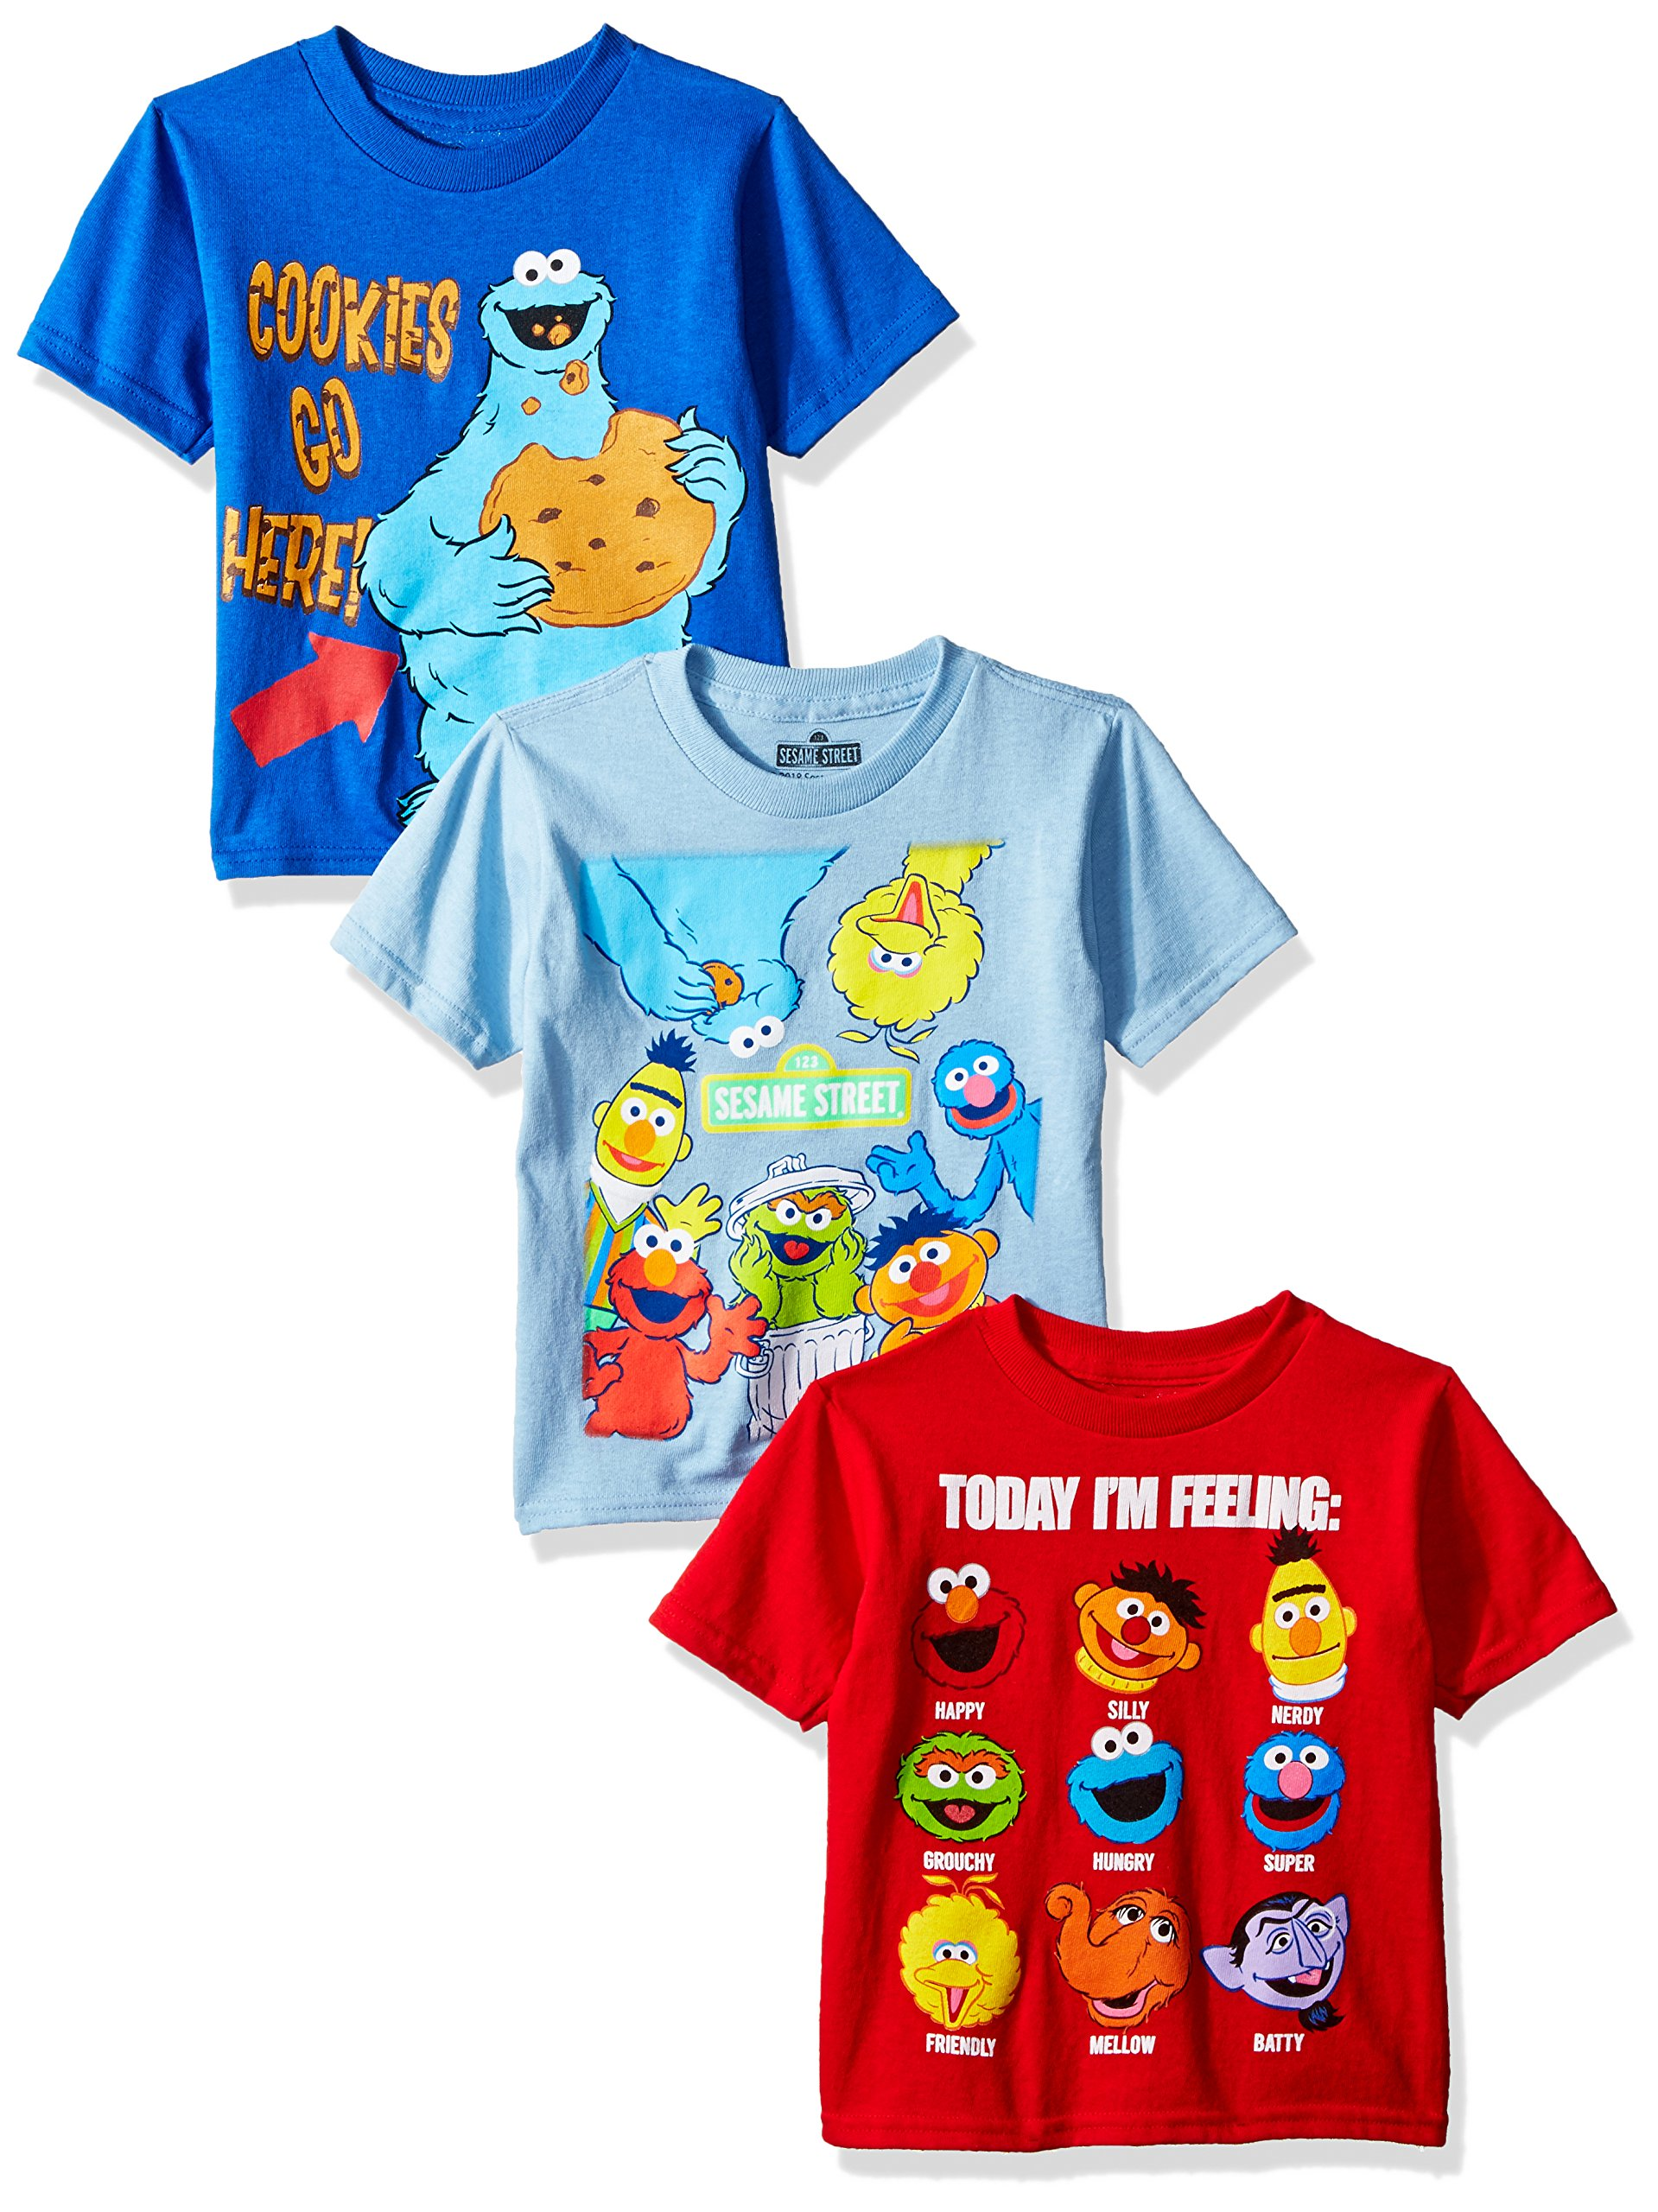 Sesame Street Toddler Boys' 3 Pack T-Shirts, Assorted, 3T